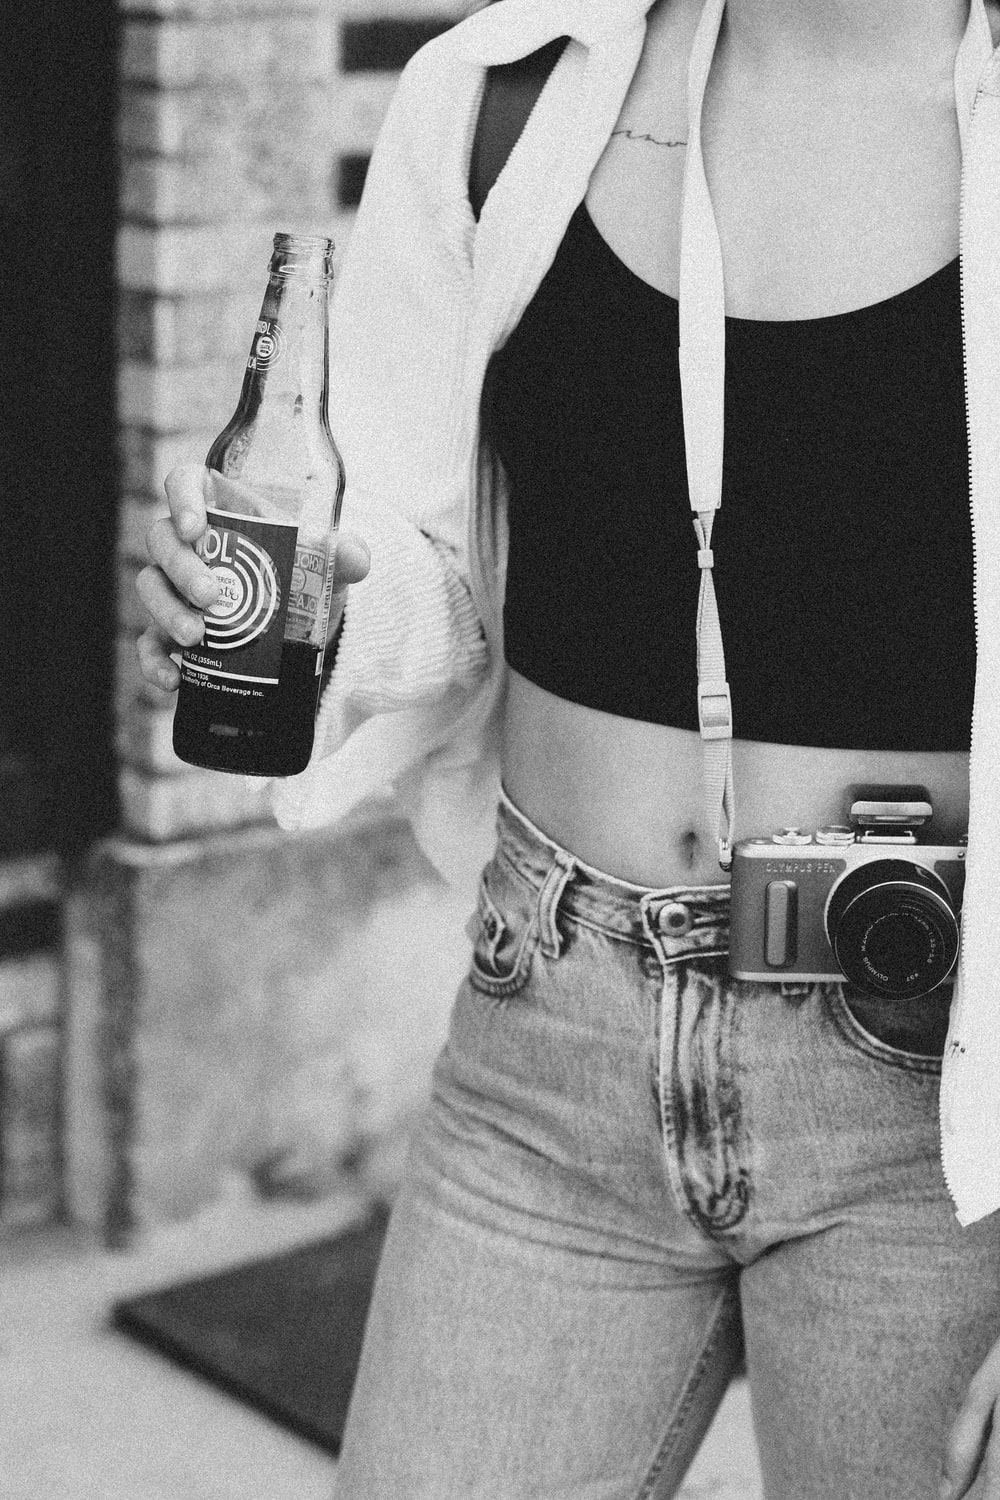 grayscale photography of woman holding product bottle